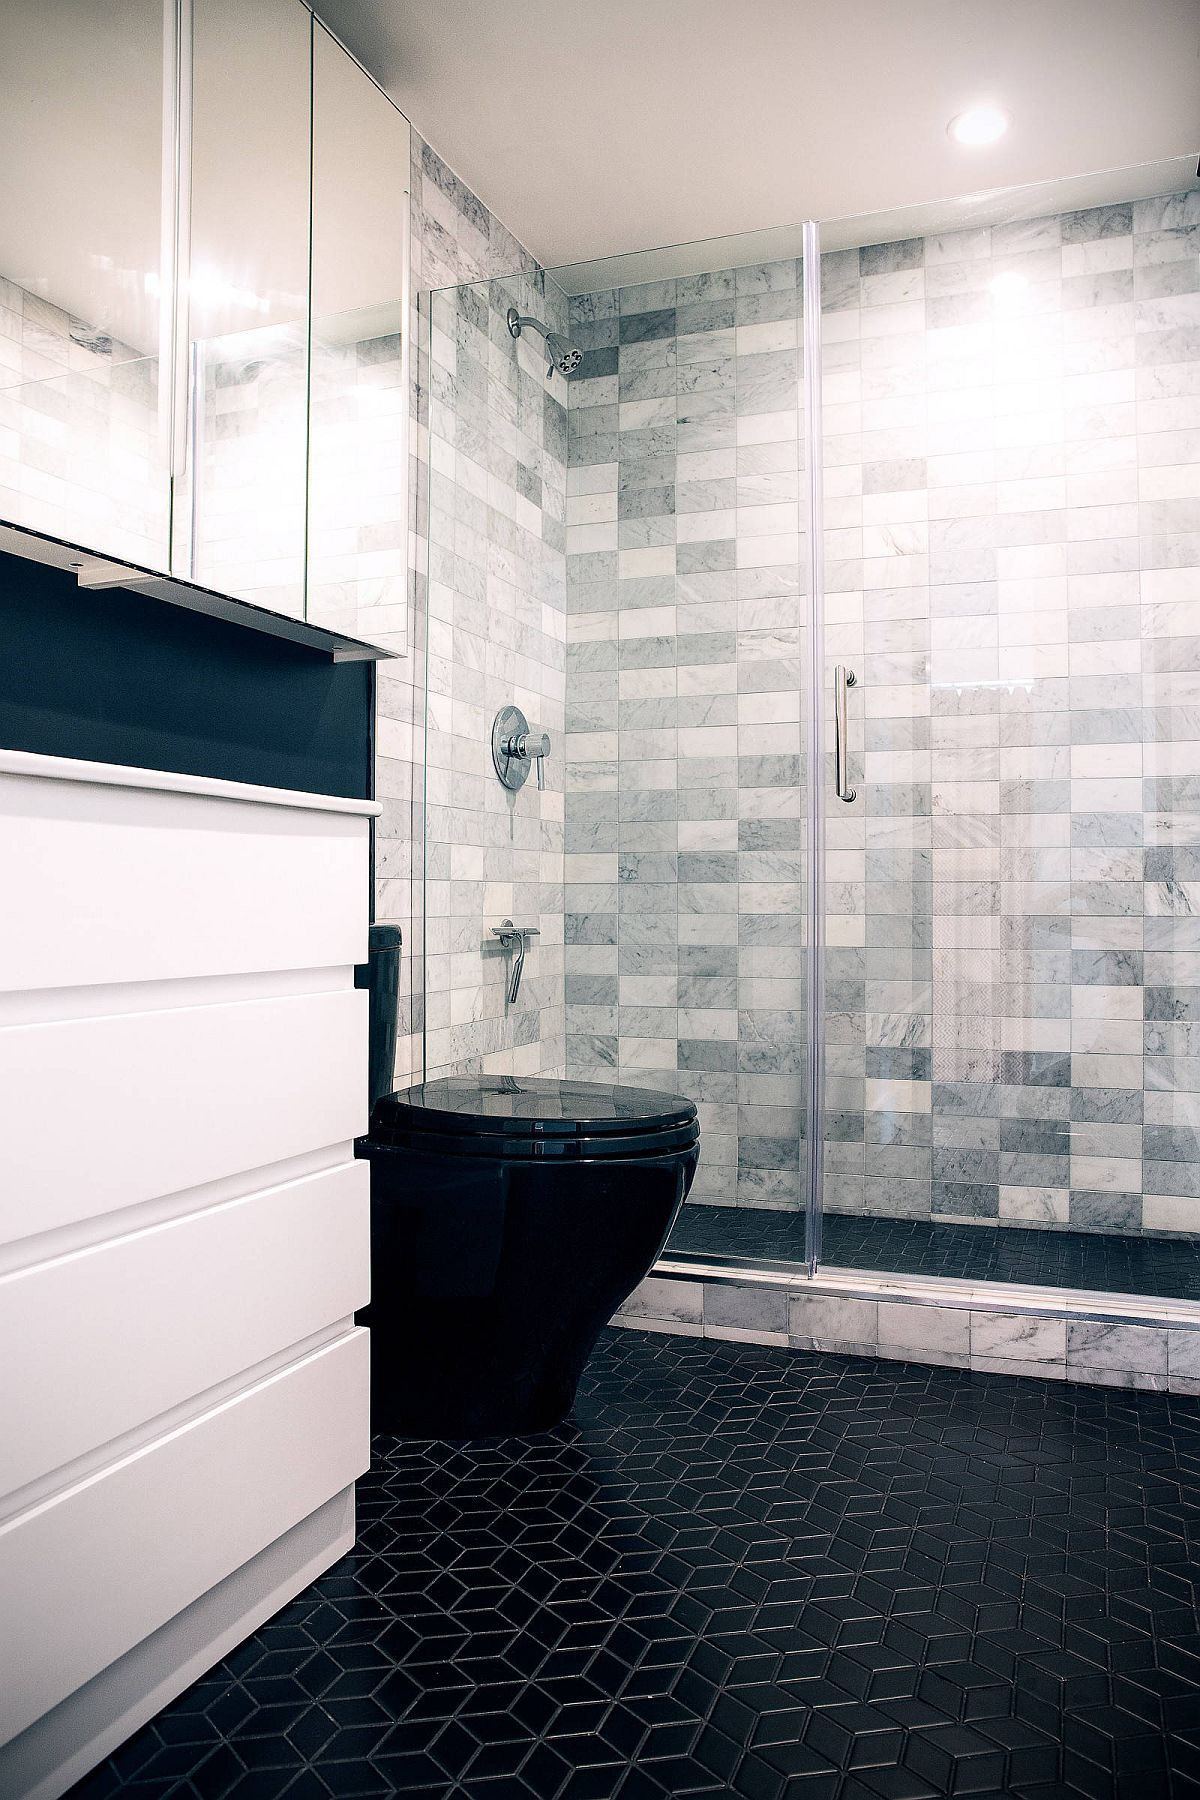 Adding pattern along with floor using black tiles in the bathroom